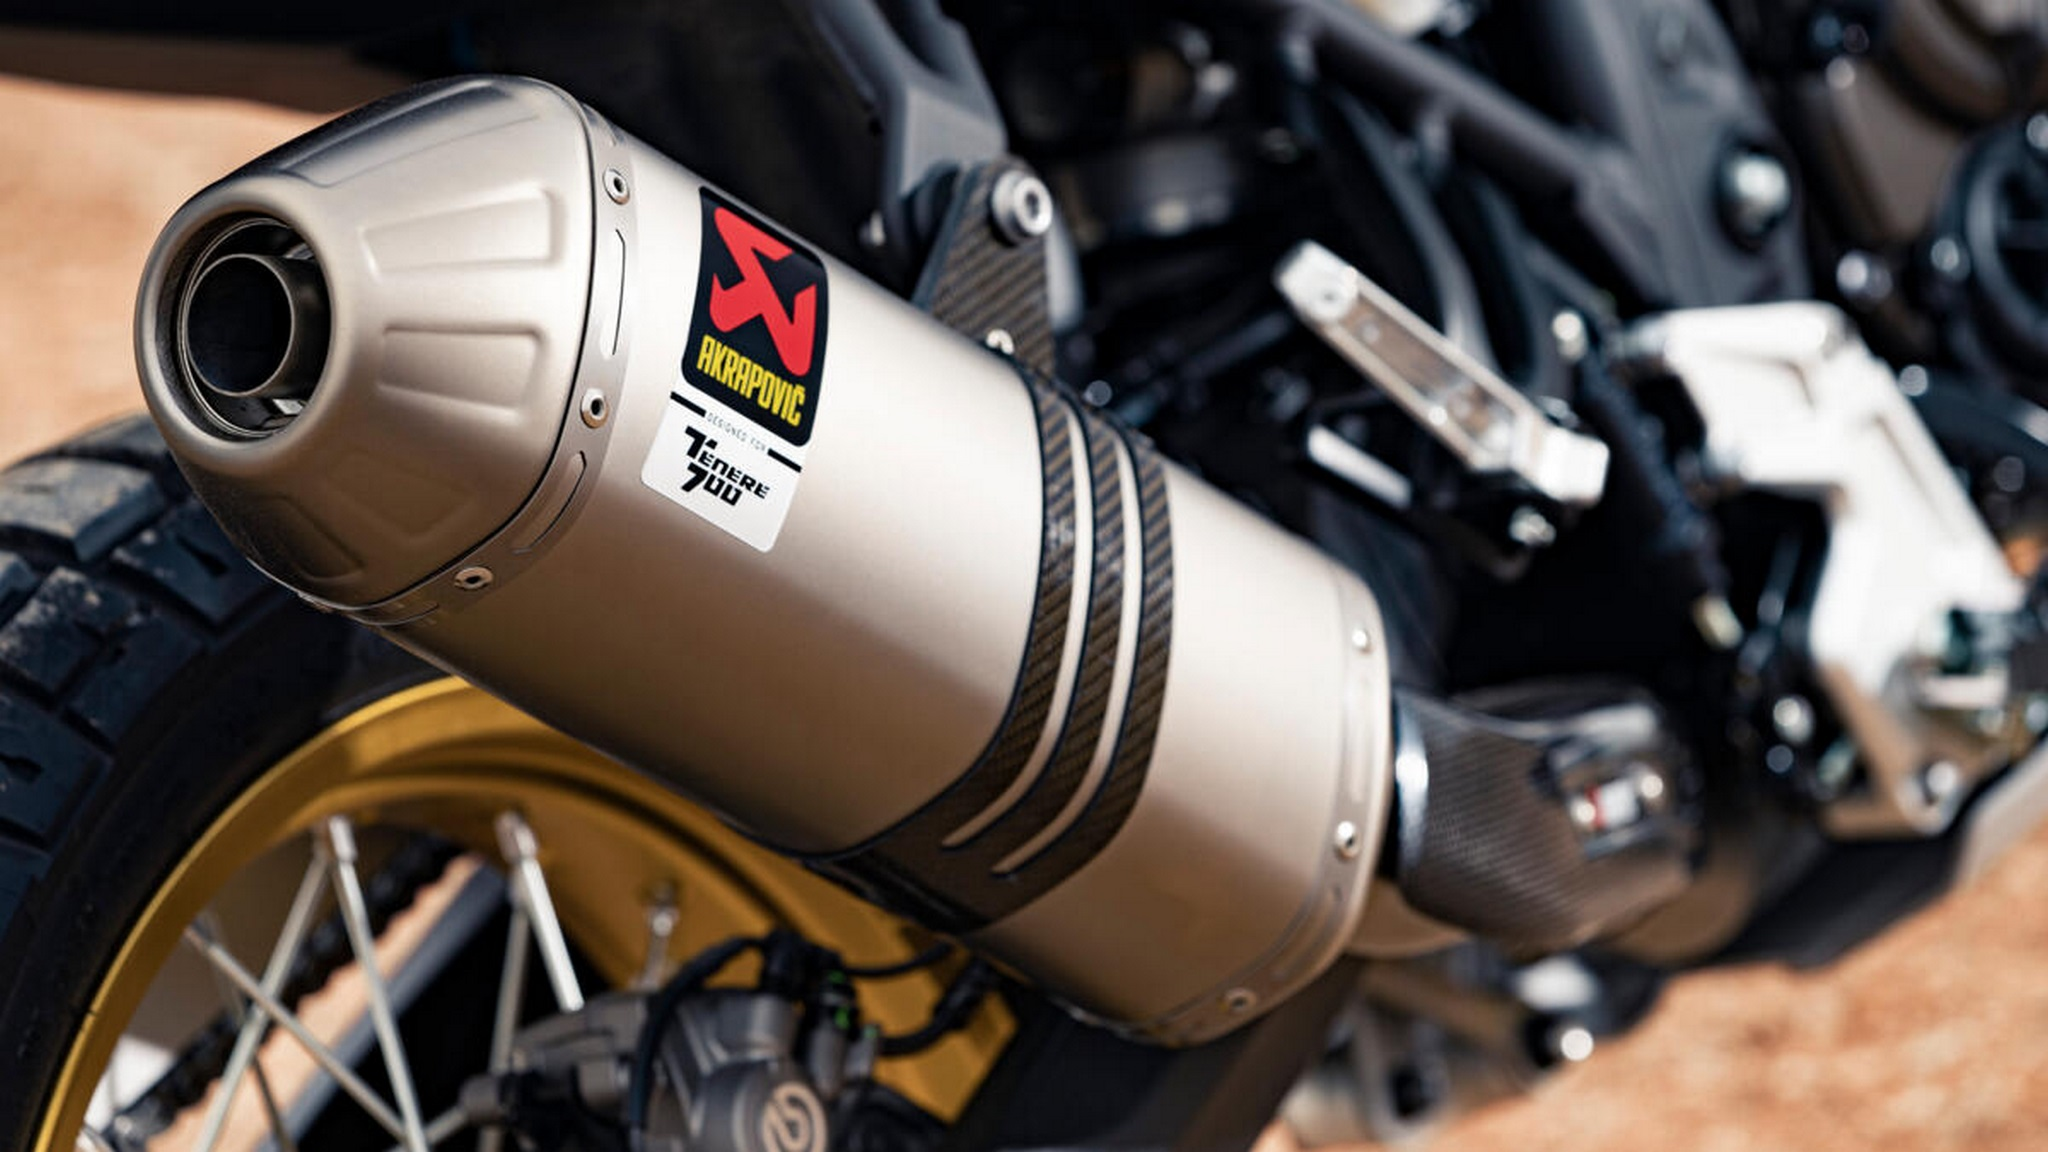 The motorcycle gets an Akrapovic exhaust